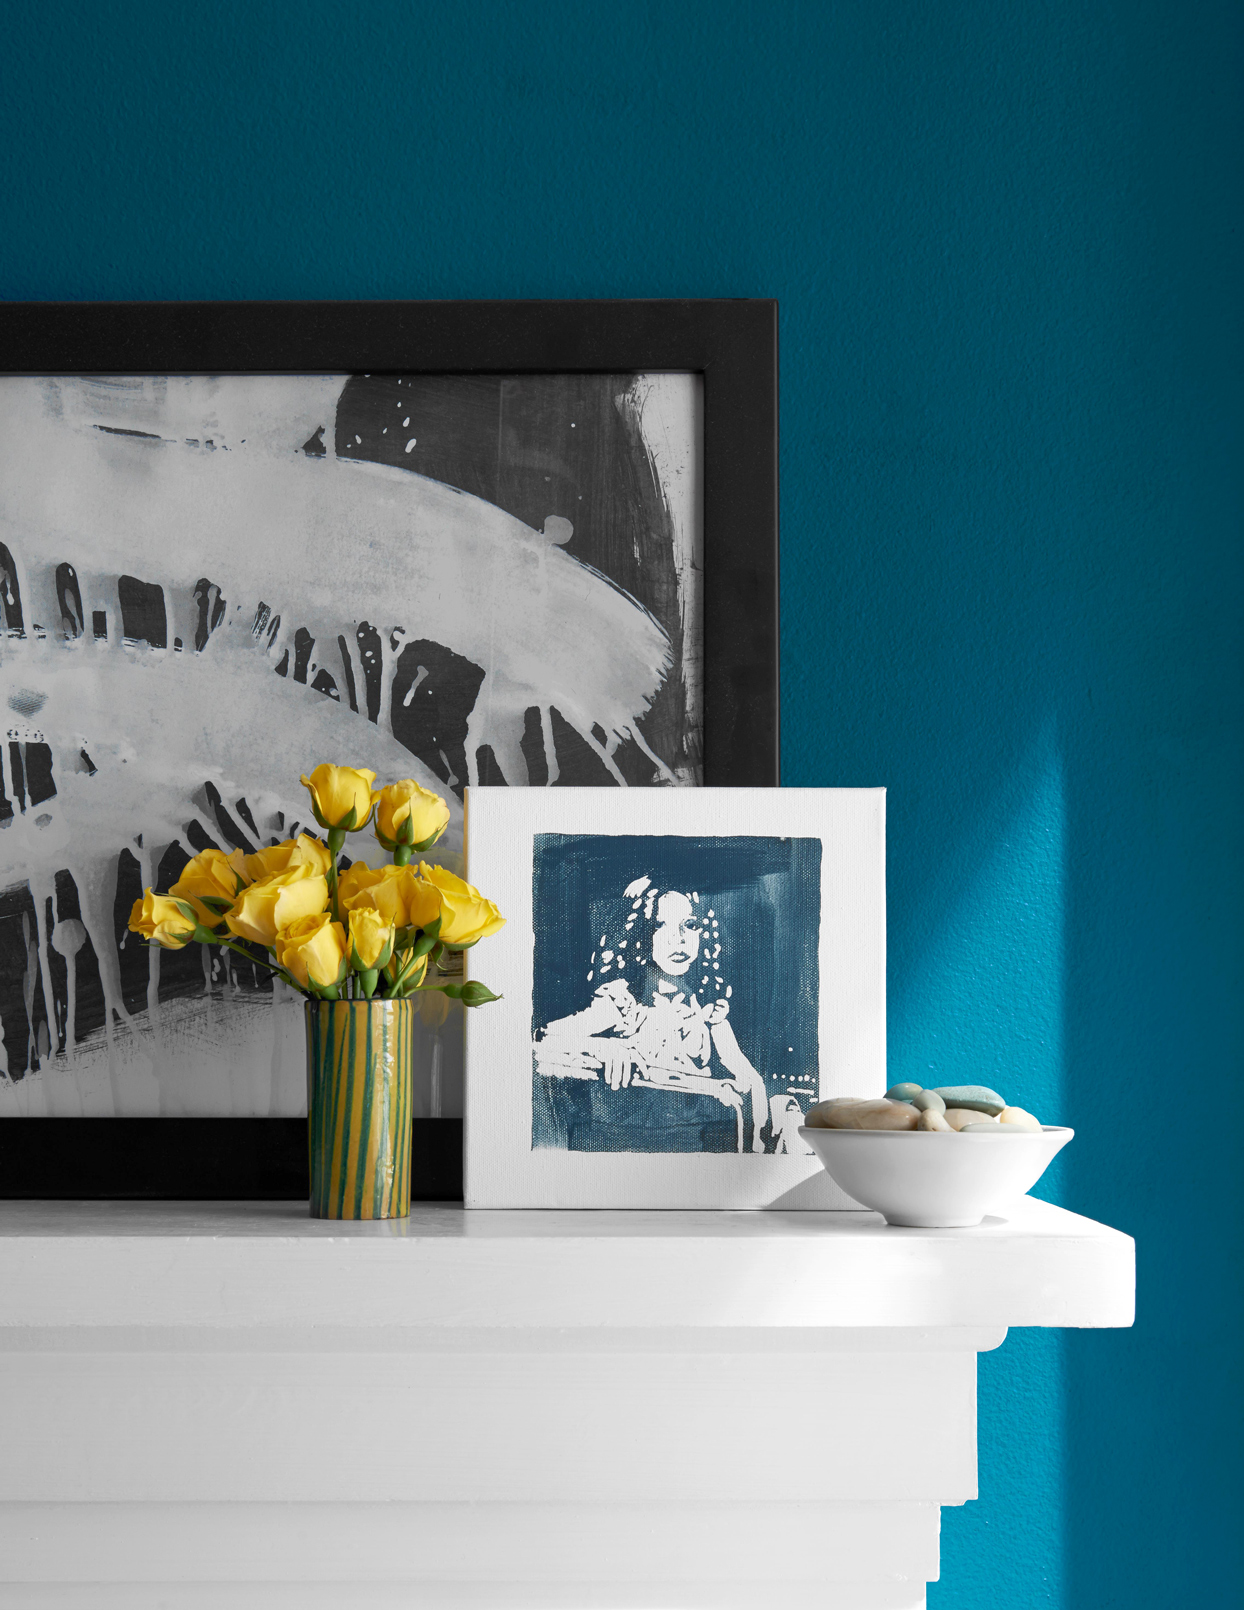 Picture frame by flower vase on mantelpiece